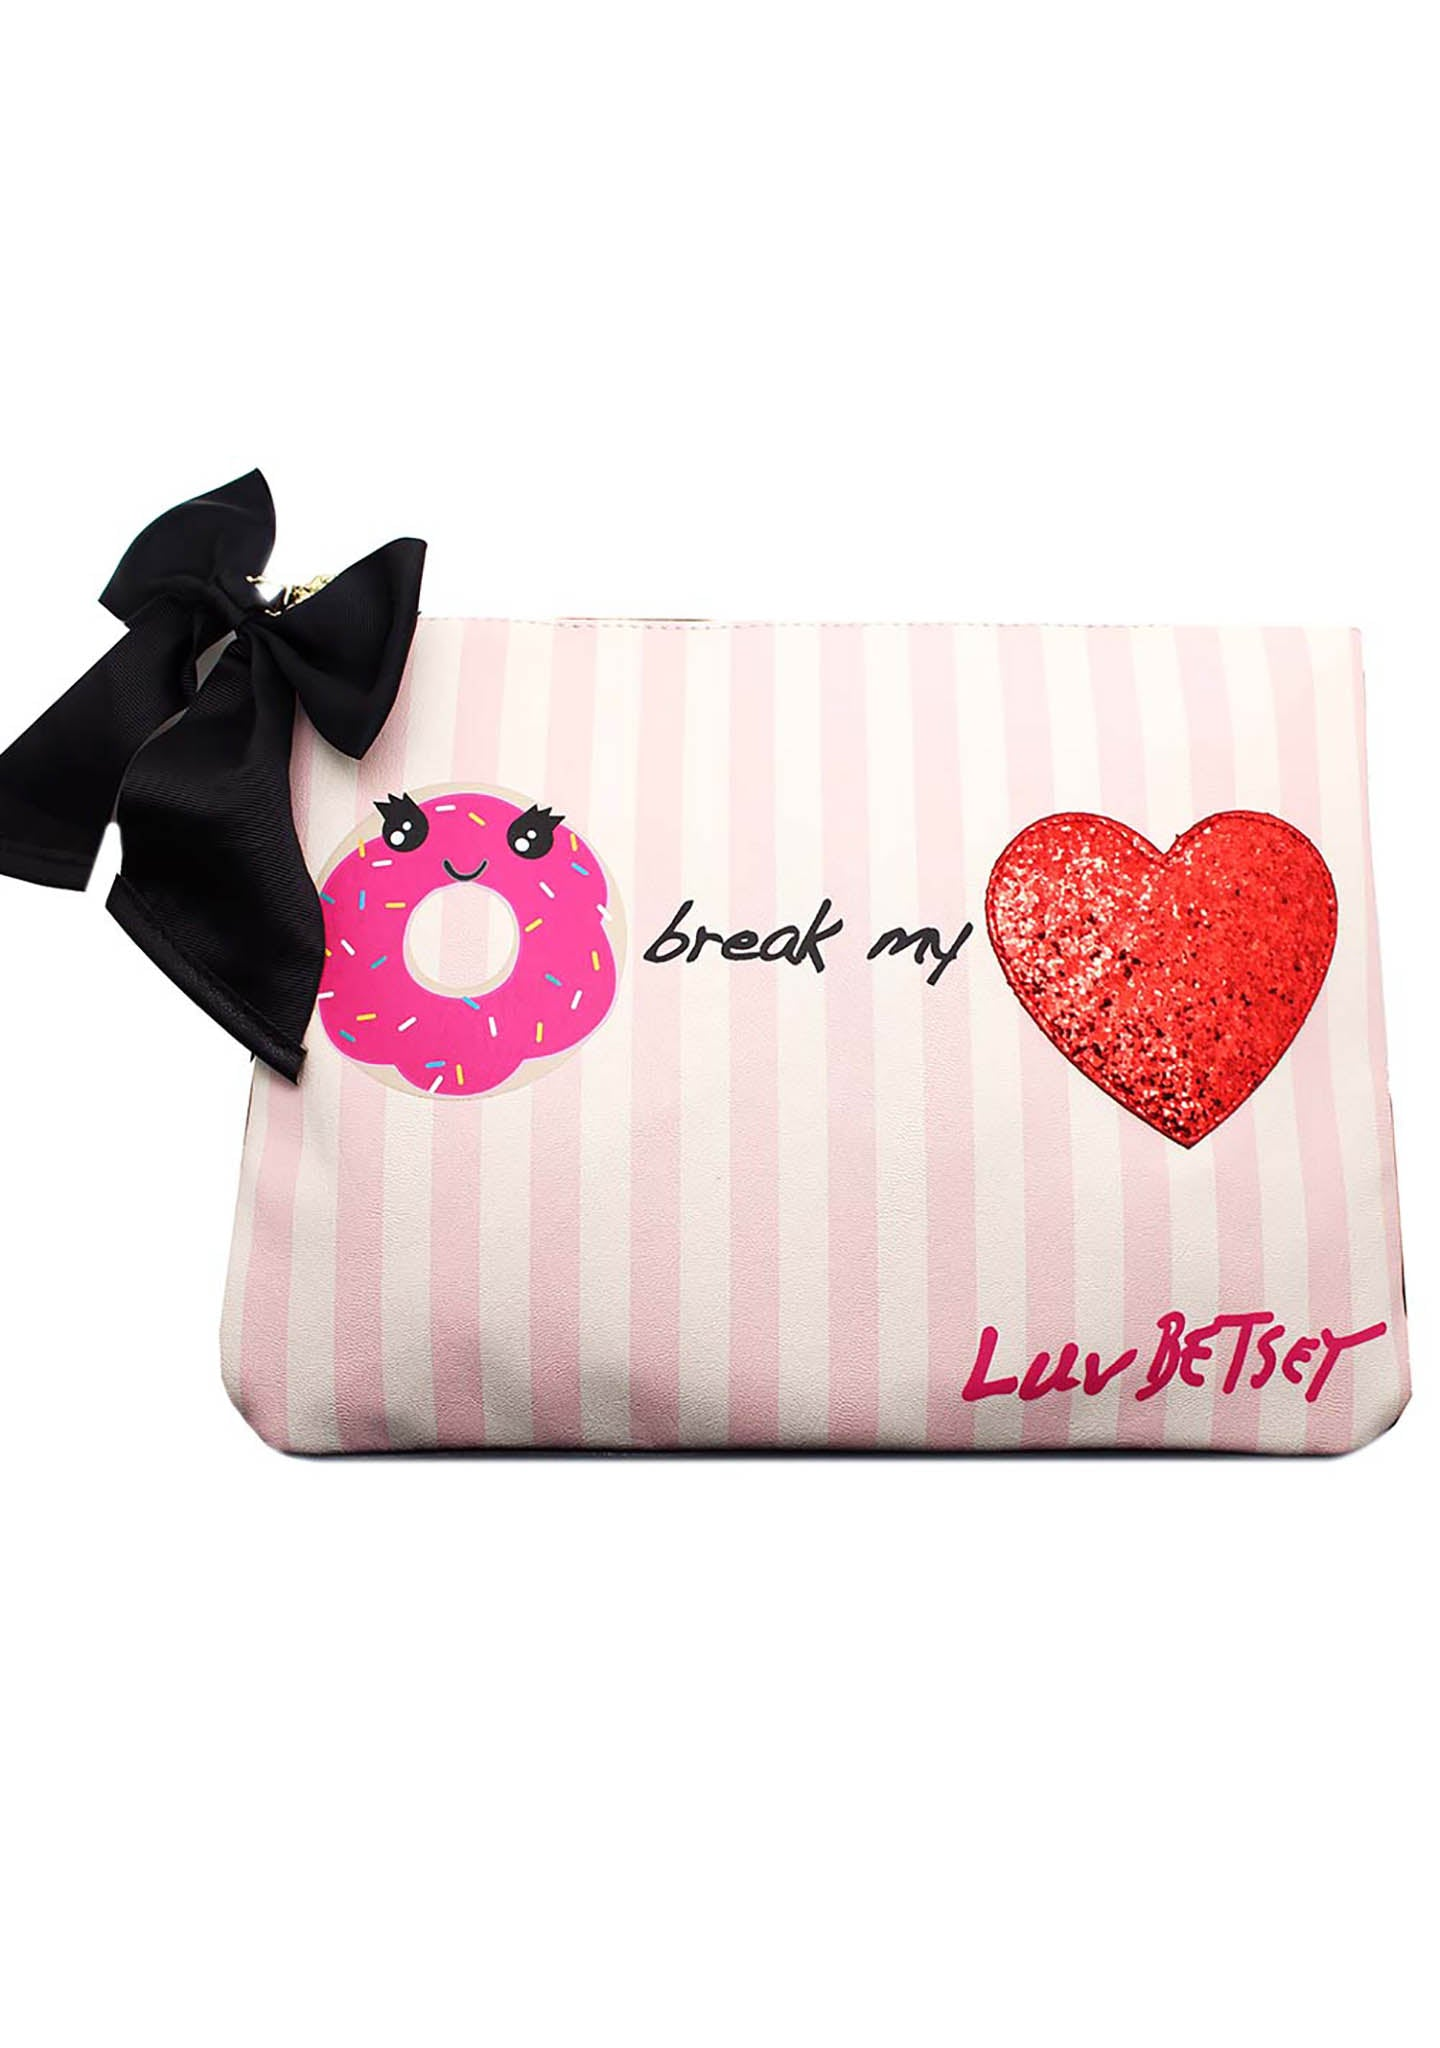 Betsey Johnson Donuts Heart Clutch Bag